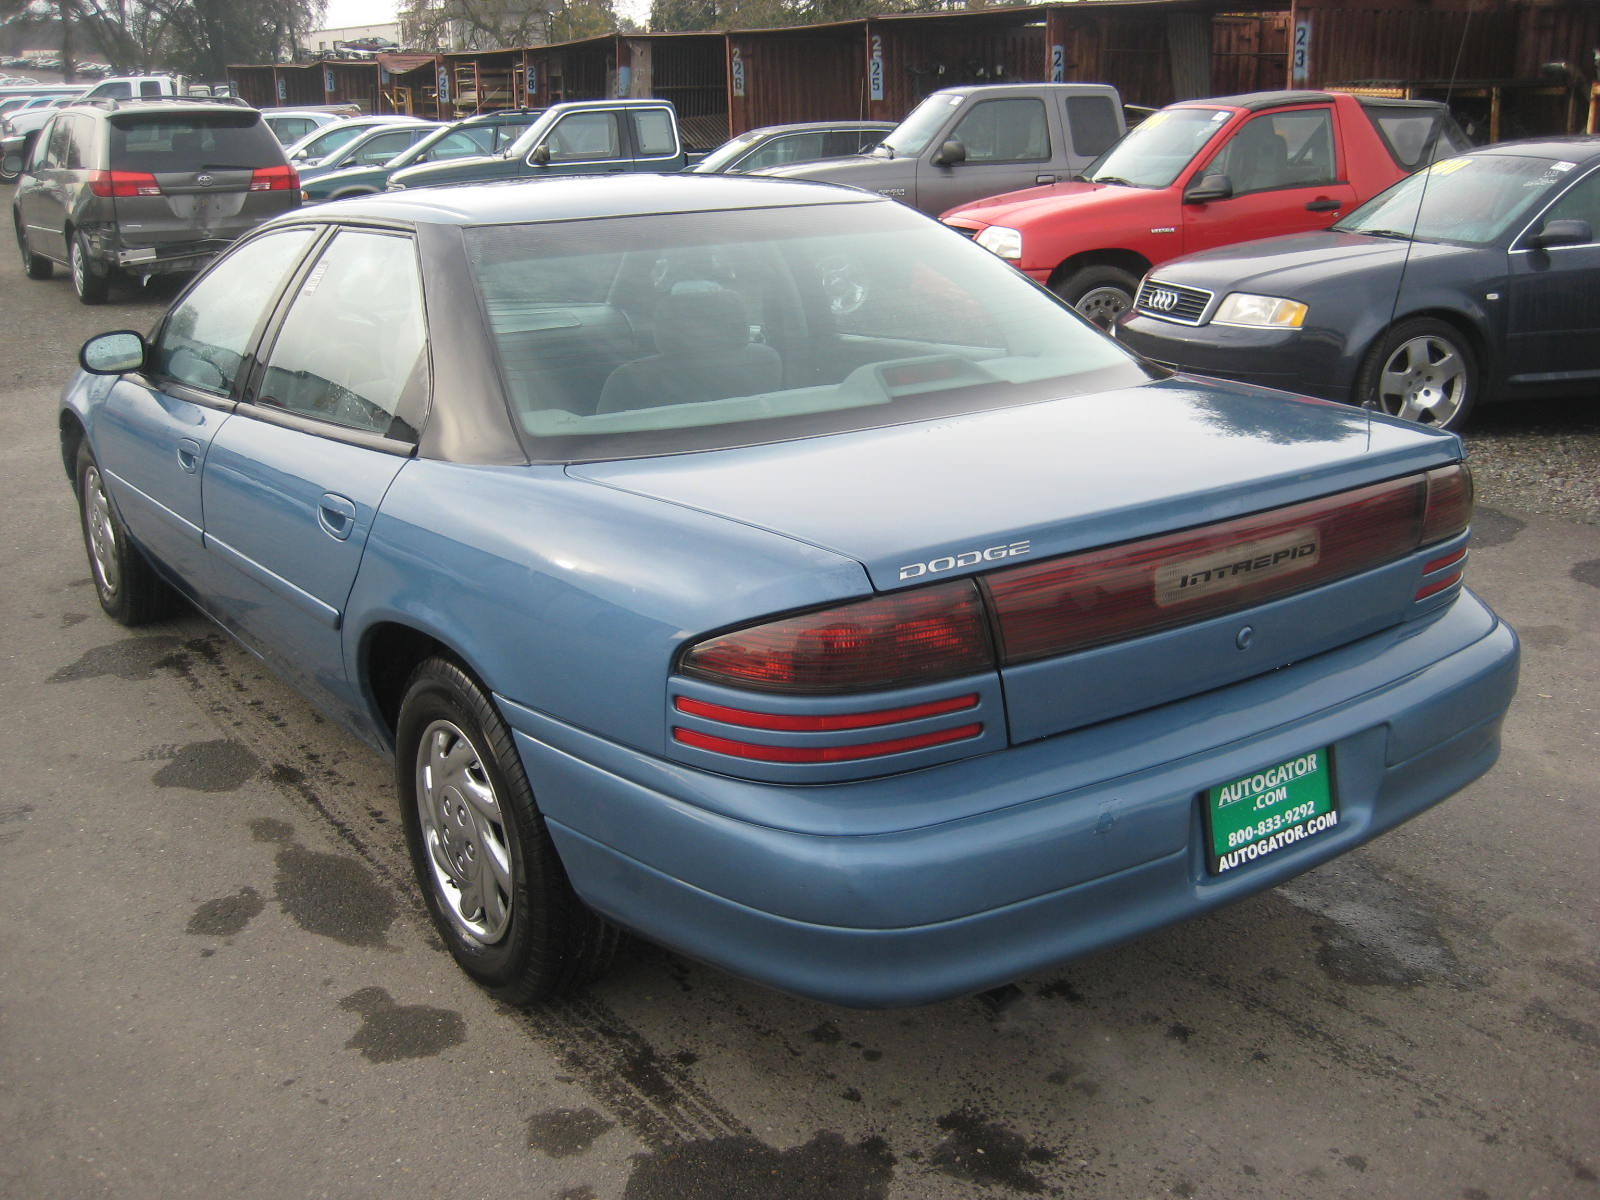 1995 Dodge Intrepid – pictures. information and specs - Auto-Database.com